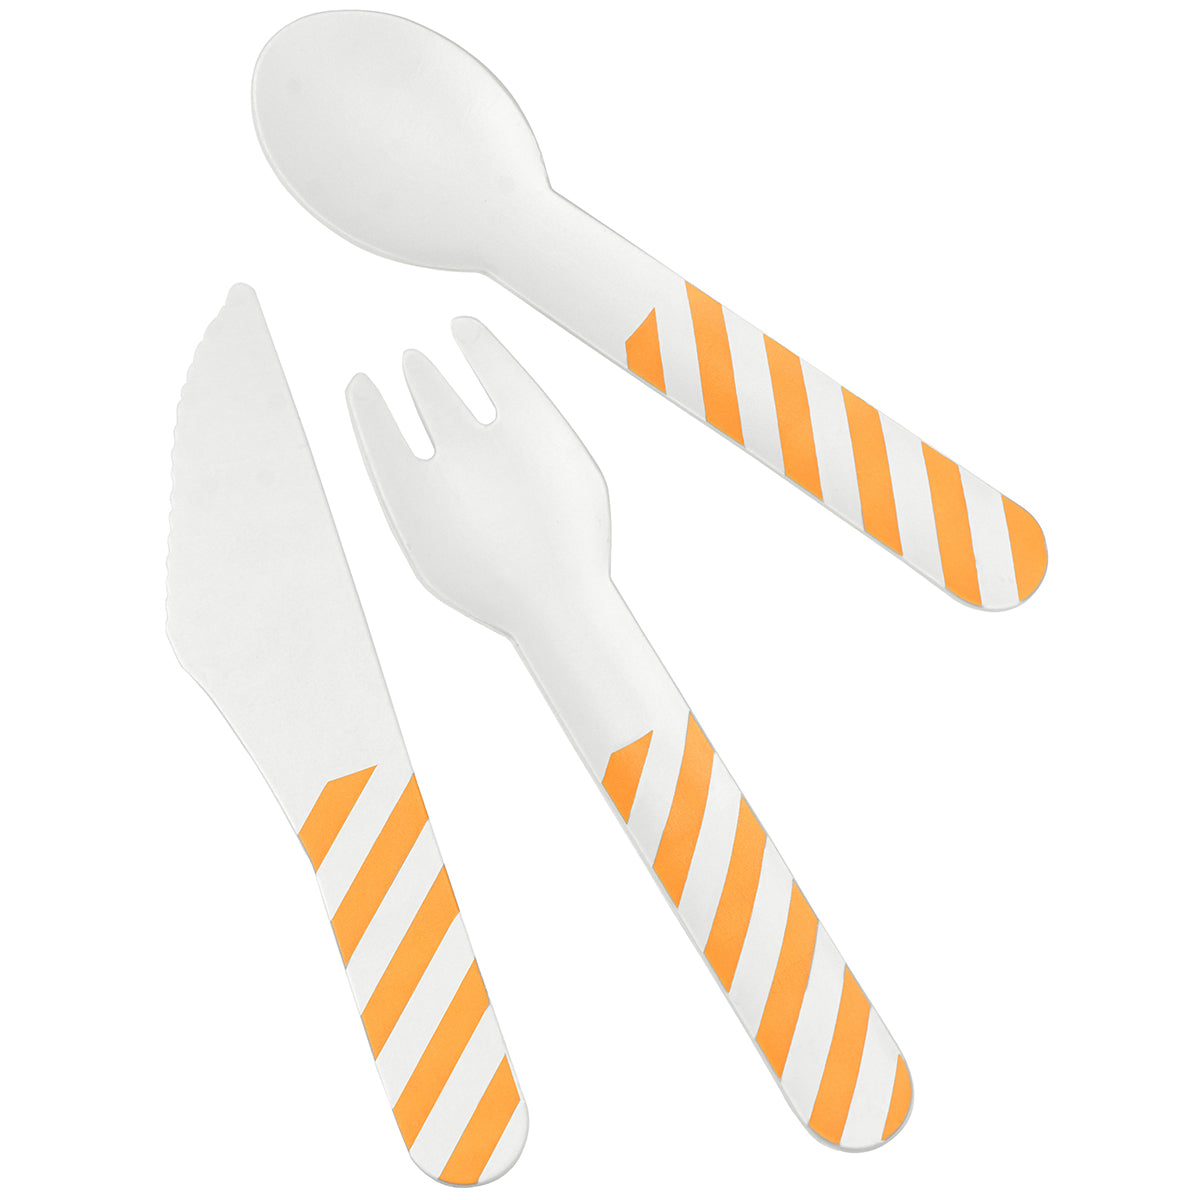 Displaying a set of orange stripe paper cutlery, which includes knife, fork and spoon